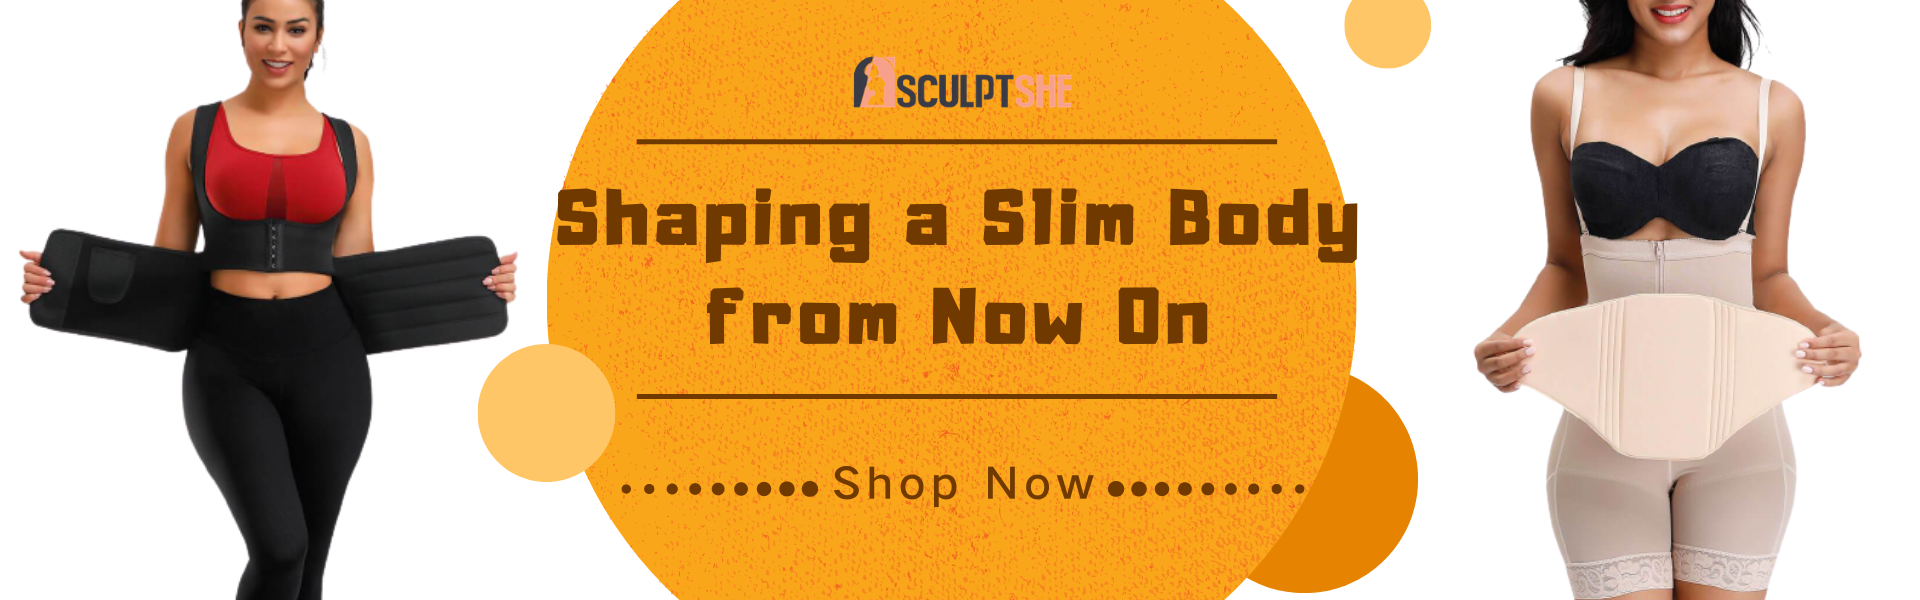 Shaping a Slim Body from Now On